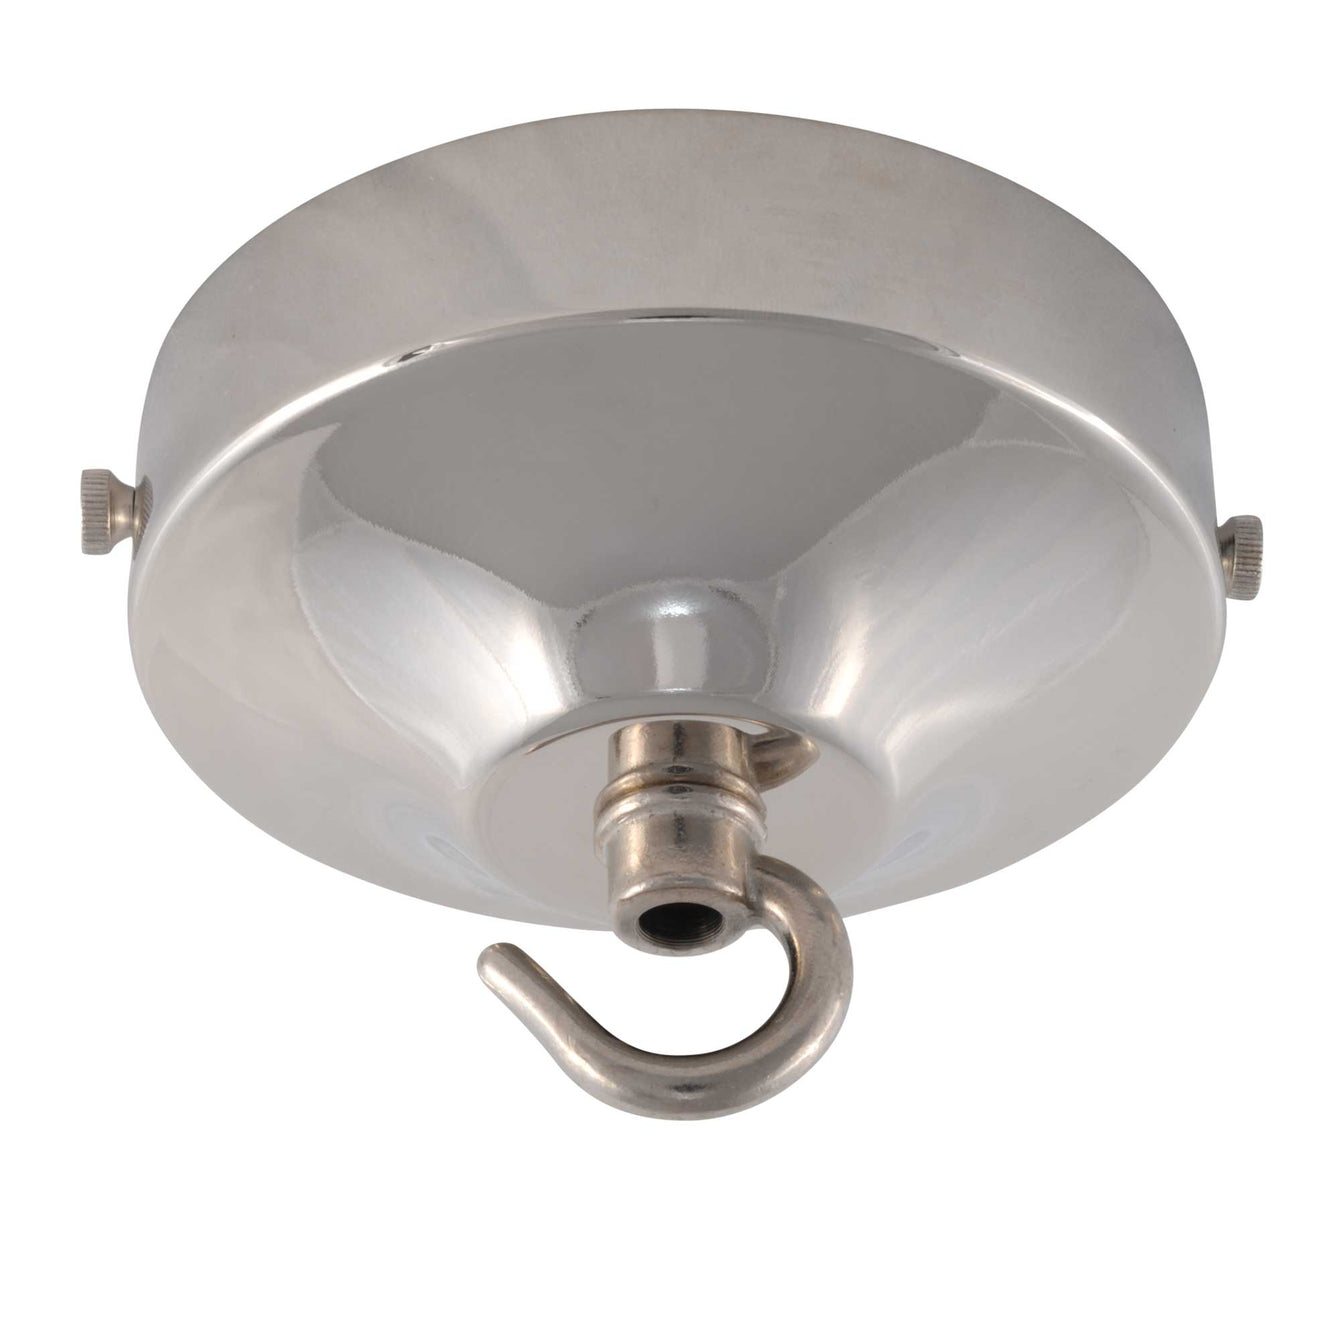 ElekTek 100mm Diameter Convex Ceiling Rose with Strap Bracket and Hook Metallic and Powder Coated Finishes Dawn Blue